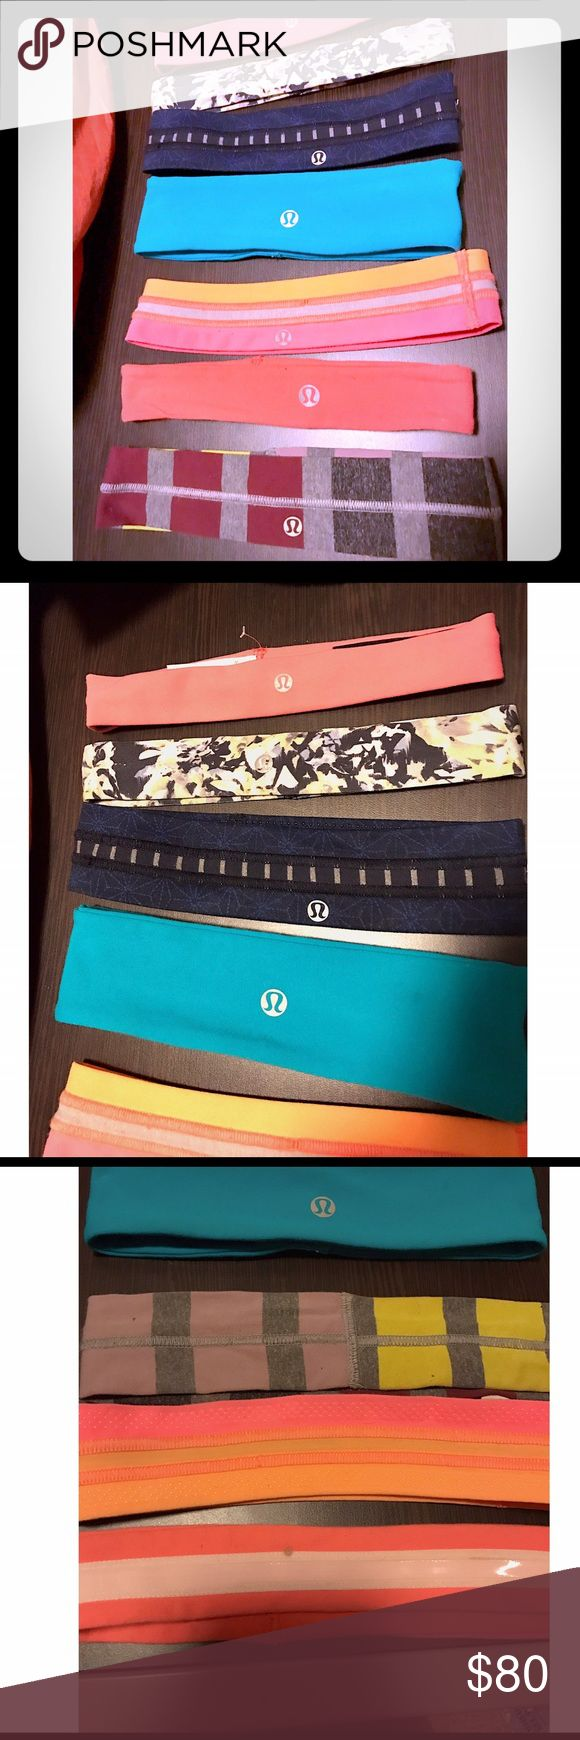 Lululemon Headbands Currently all are available, will put red line through once sold. Top 3 NEVER WORN! Please let me know which you are interested in purchasing & I will make separate post. Thin are $14; Thick are $18 because they are rare and no longer being made in this style. ***CLEARANCE: •$12 -Bottom Thin Pink (small stain on inside) -Thick Light Blue (small stain, washable) •$14 -Red/Gray Striped (a little stretched out)*** PRICES ARE FIRM & cheaper on Mèrc:) lululemon athletica…